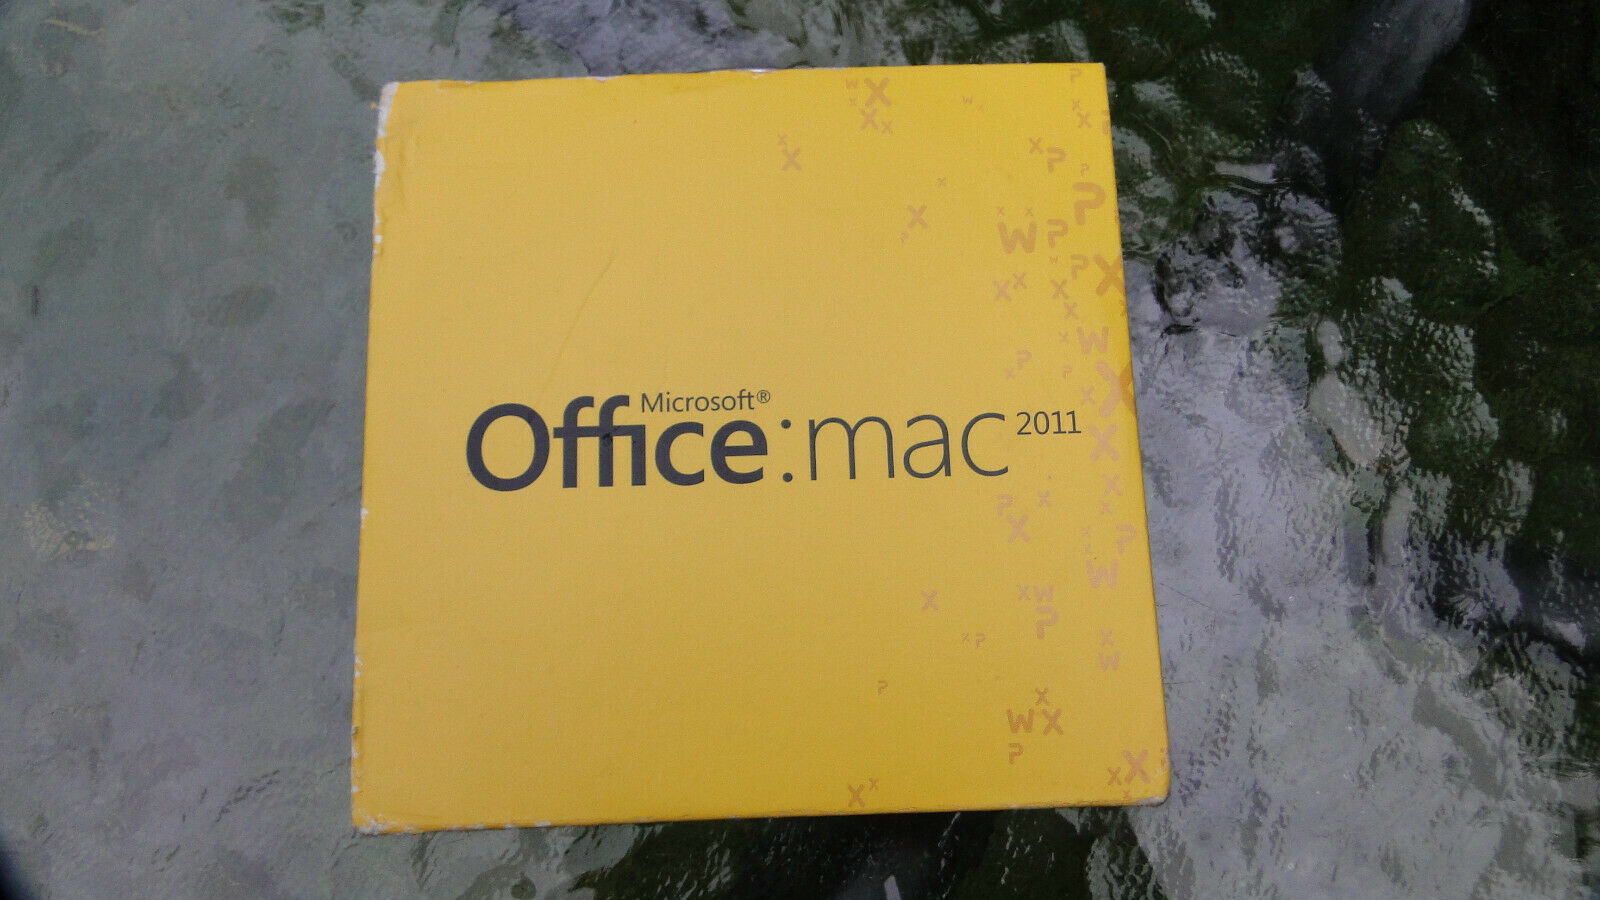 Microsoft Office Mac 2011 Home and Student Russian Version - $36.56